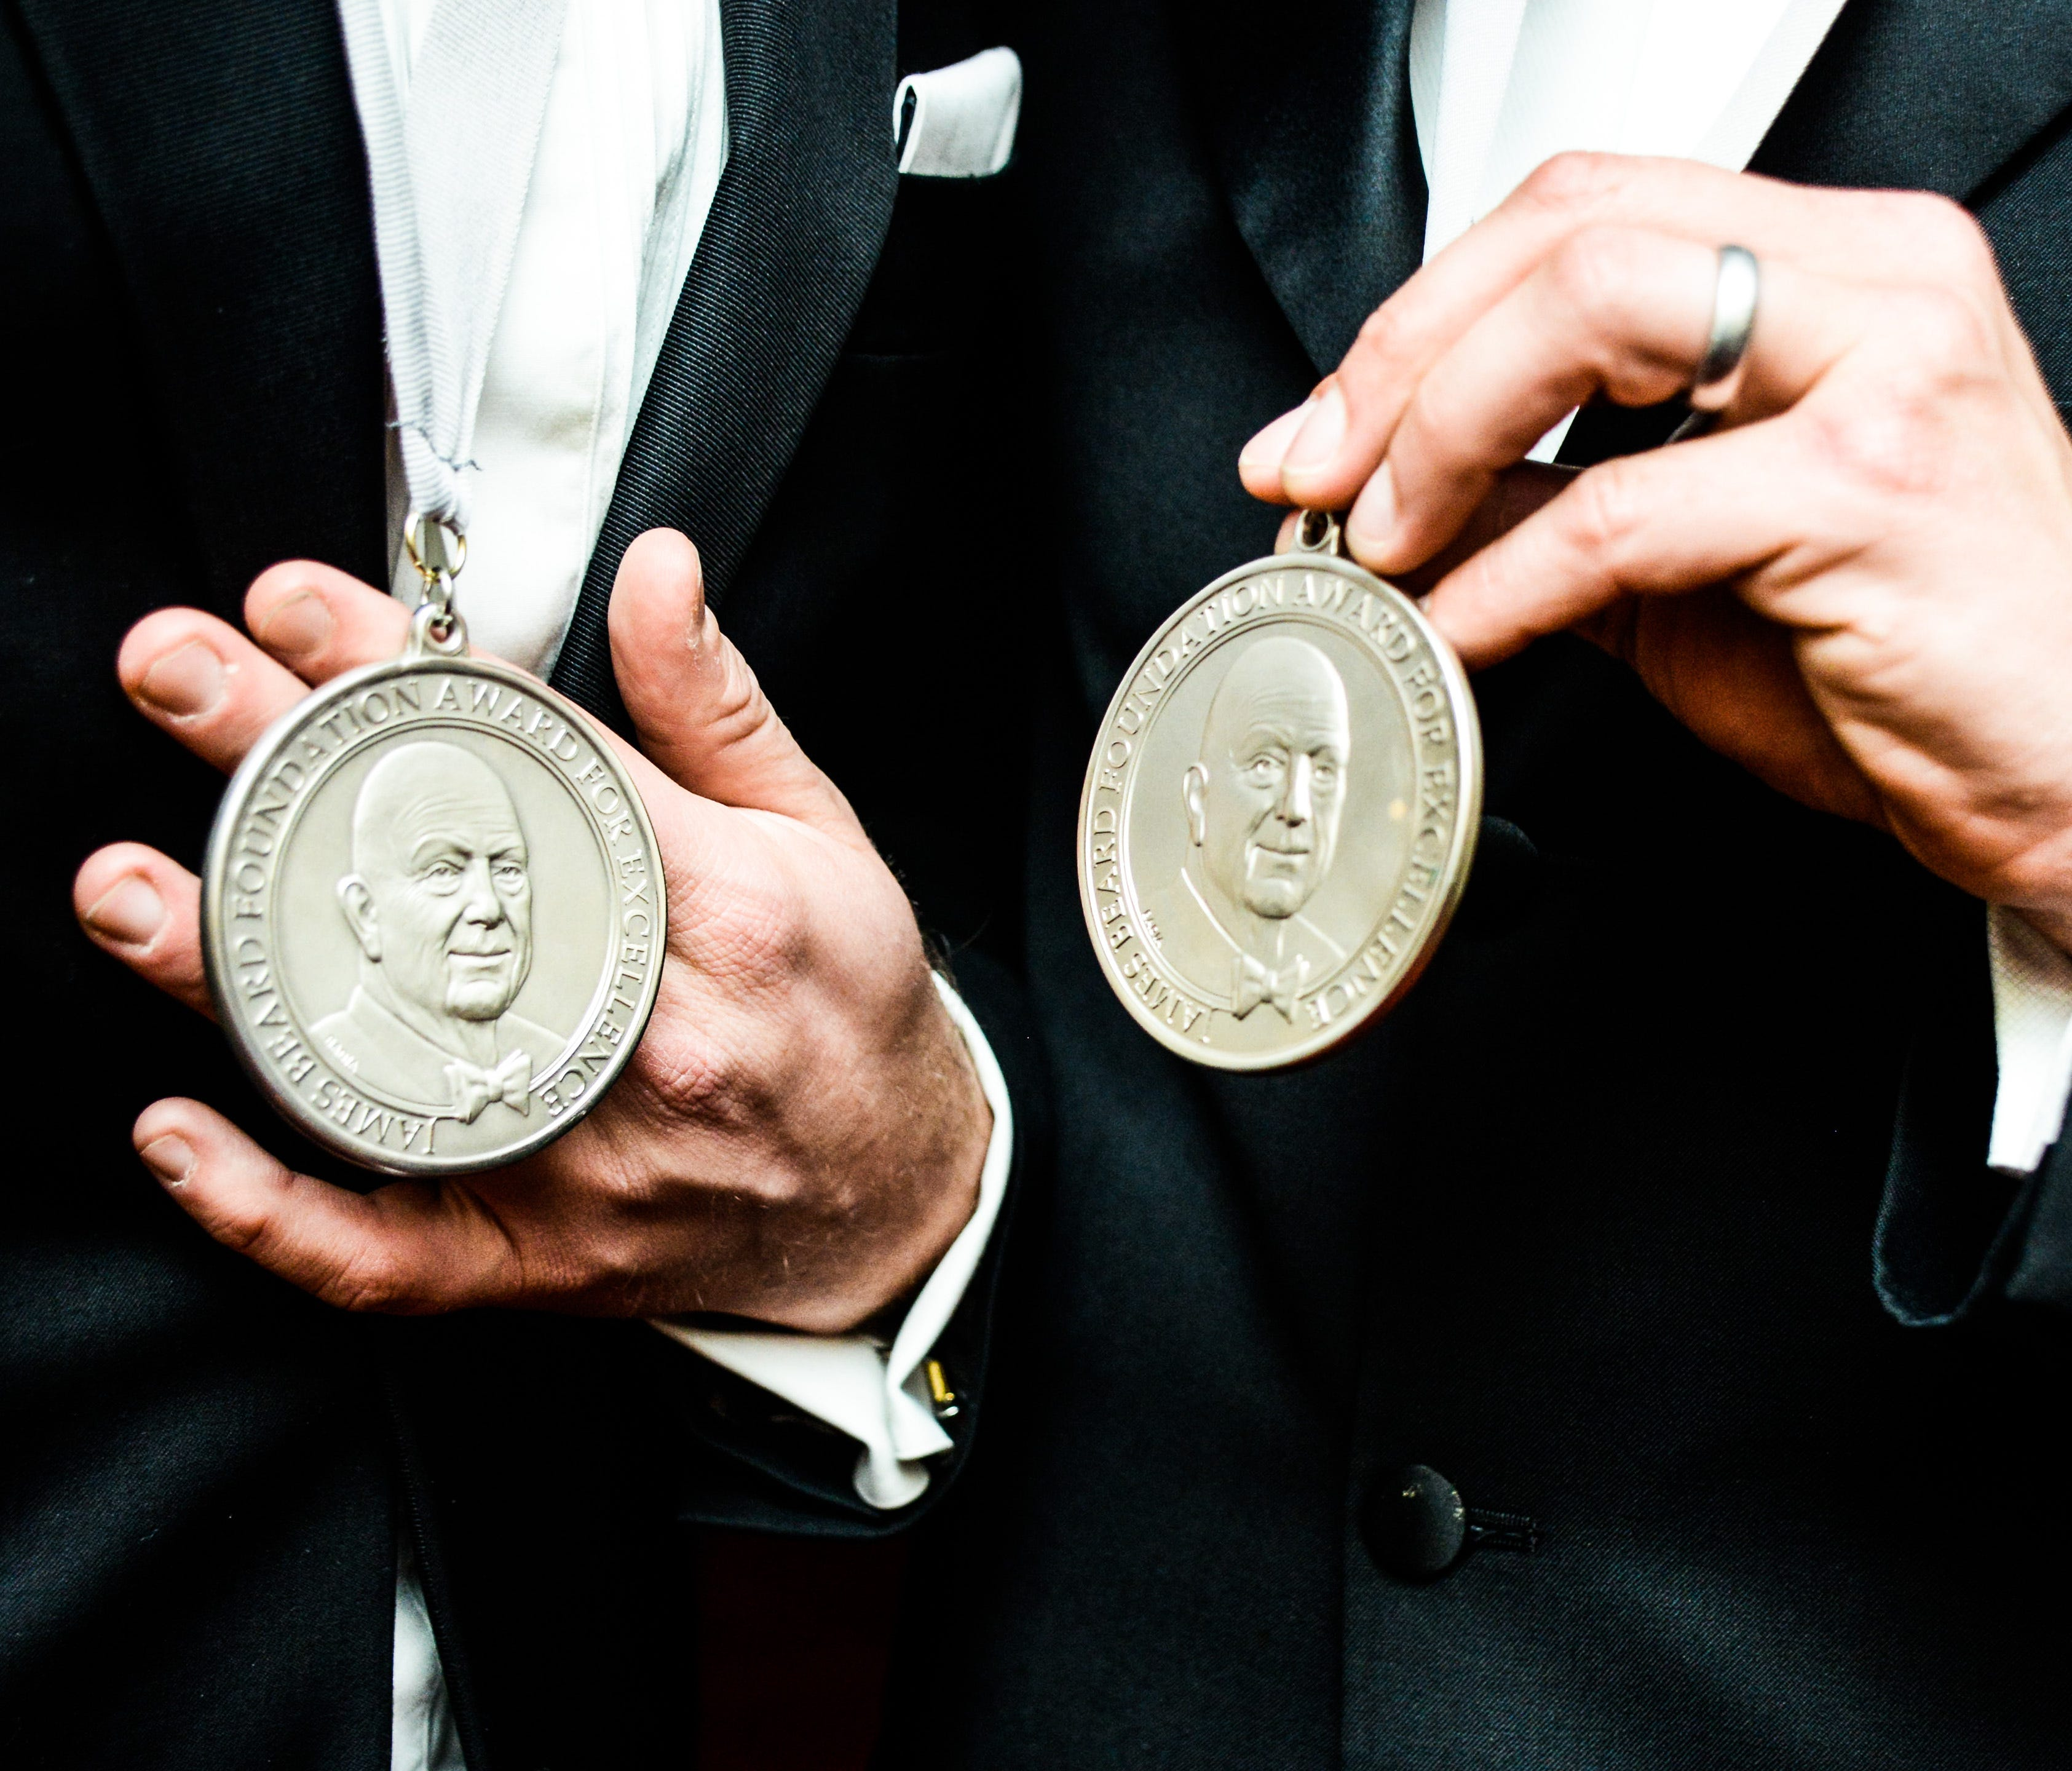 The James Beard Foundation (JBF) honored chefs, restaurants and more stars in the food industry at its 28th annual awards gala on May 7.